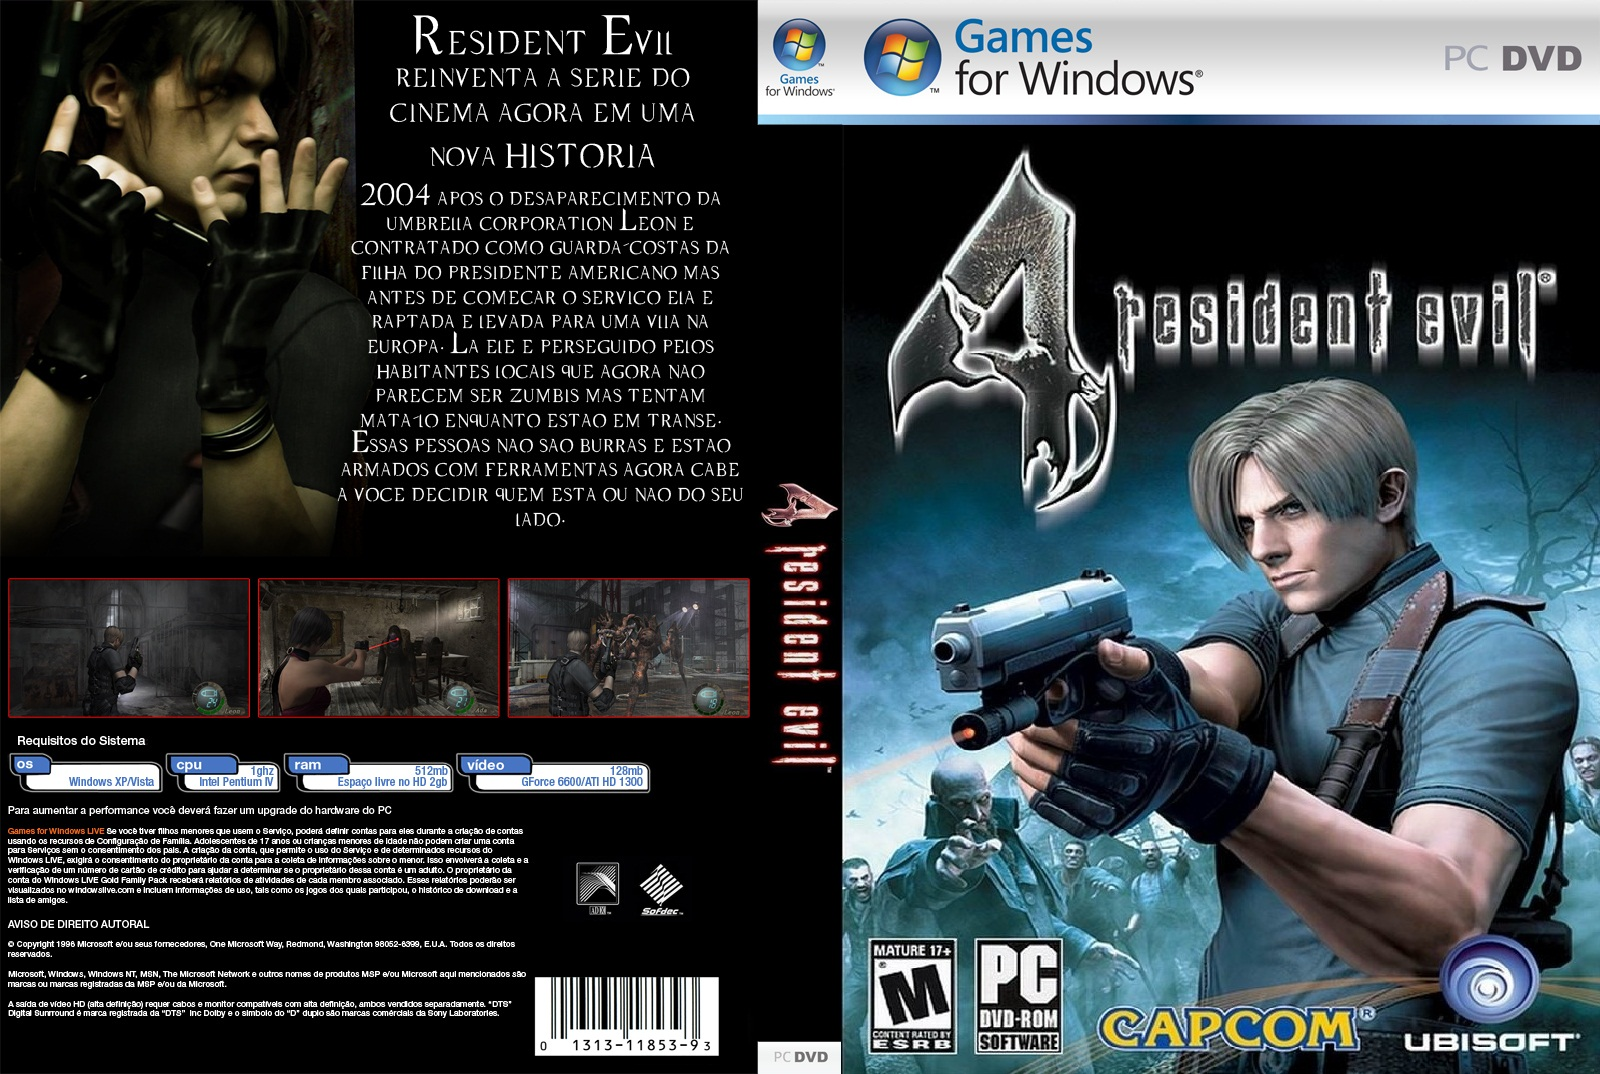 Resident evil shemale sex pictures